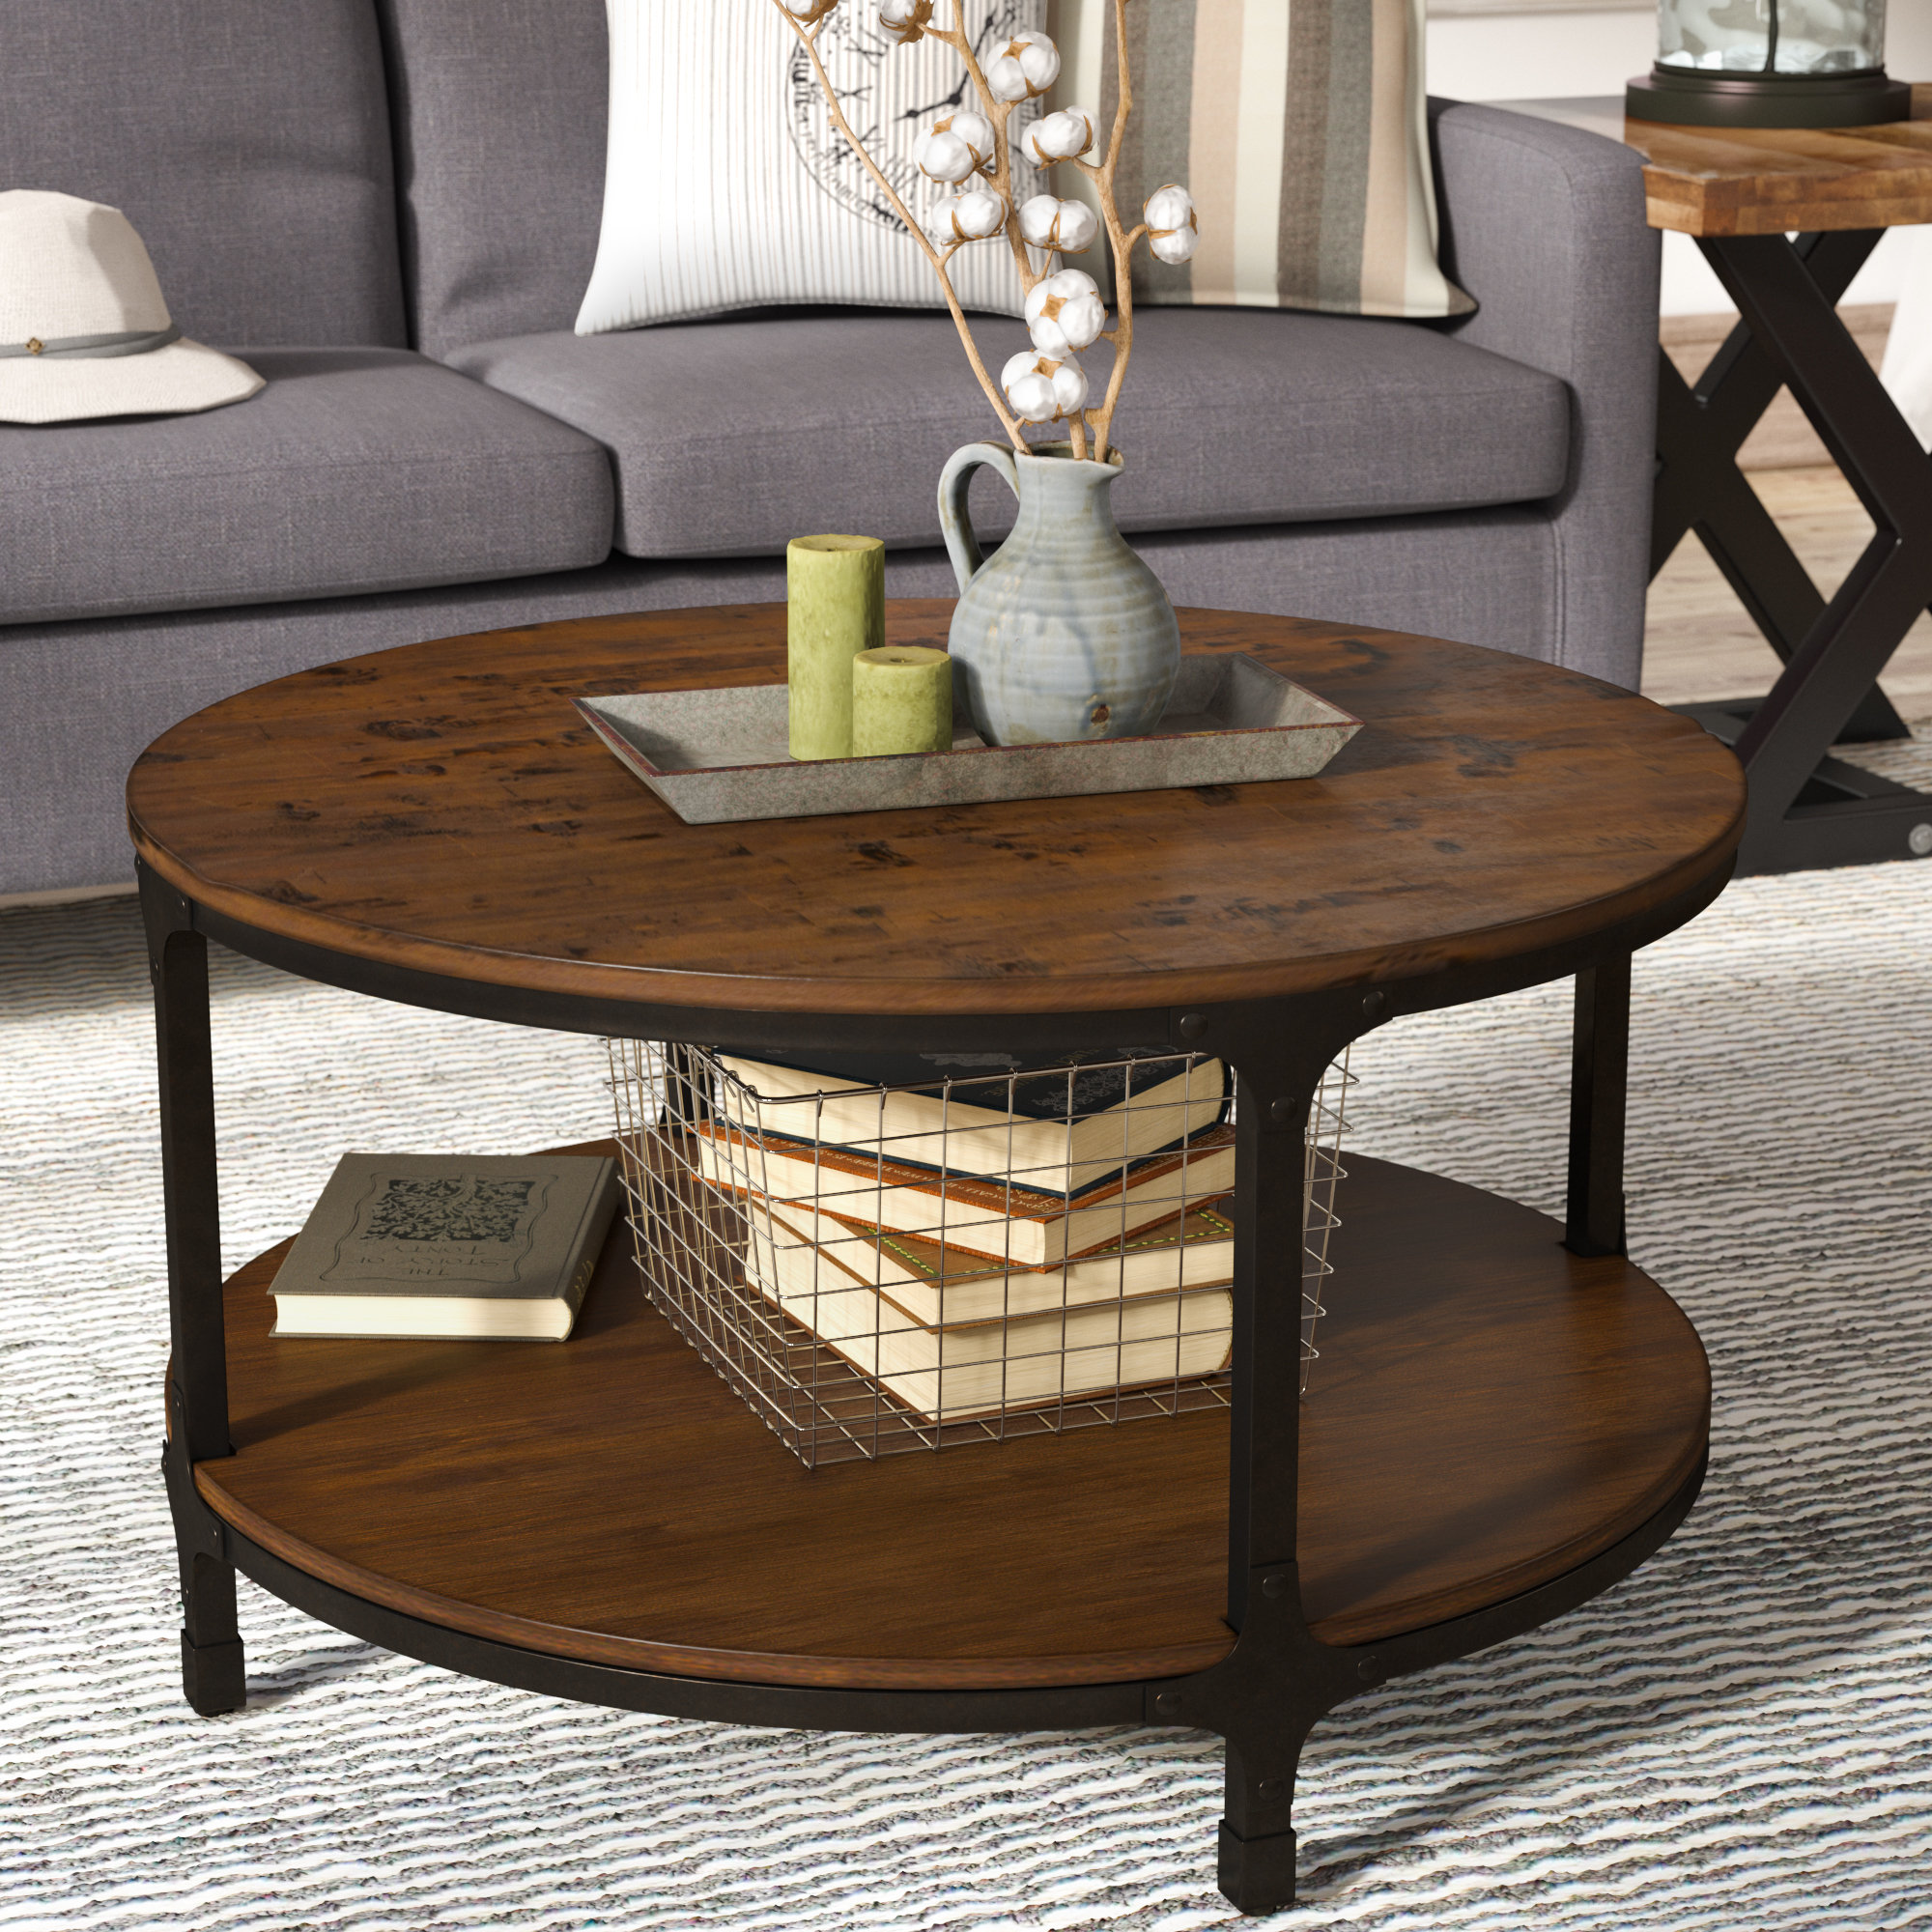 laurel foundry modern farmhouse carolyn round coffee table reviews end tables sofa chocolate brown couch living room ideas powells furniture life sense home suede side set target